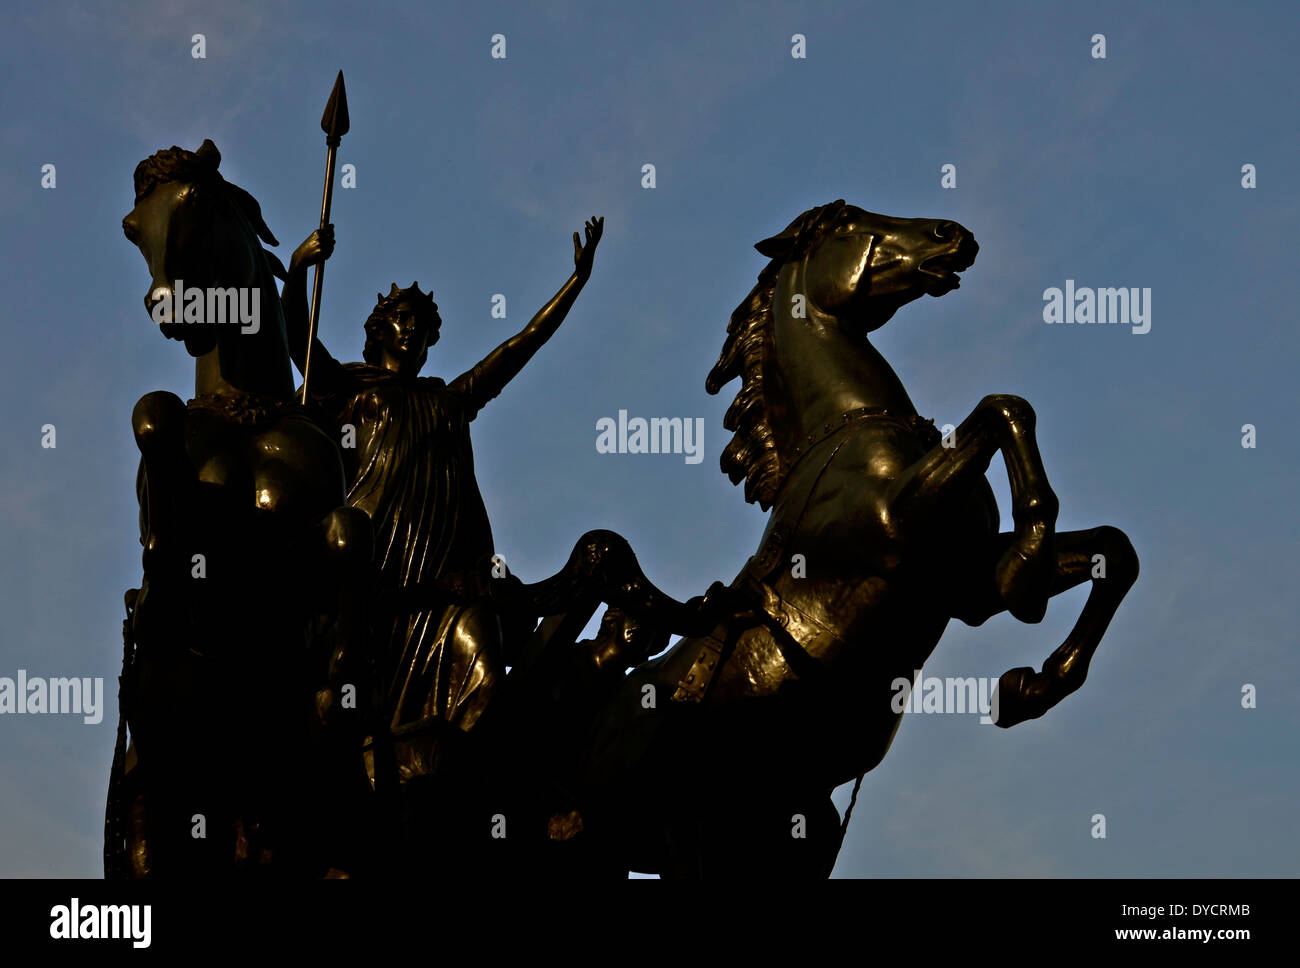 A statue in London, Opposite the houses of commons - Stock Image